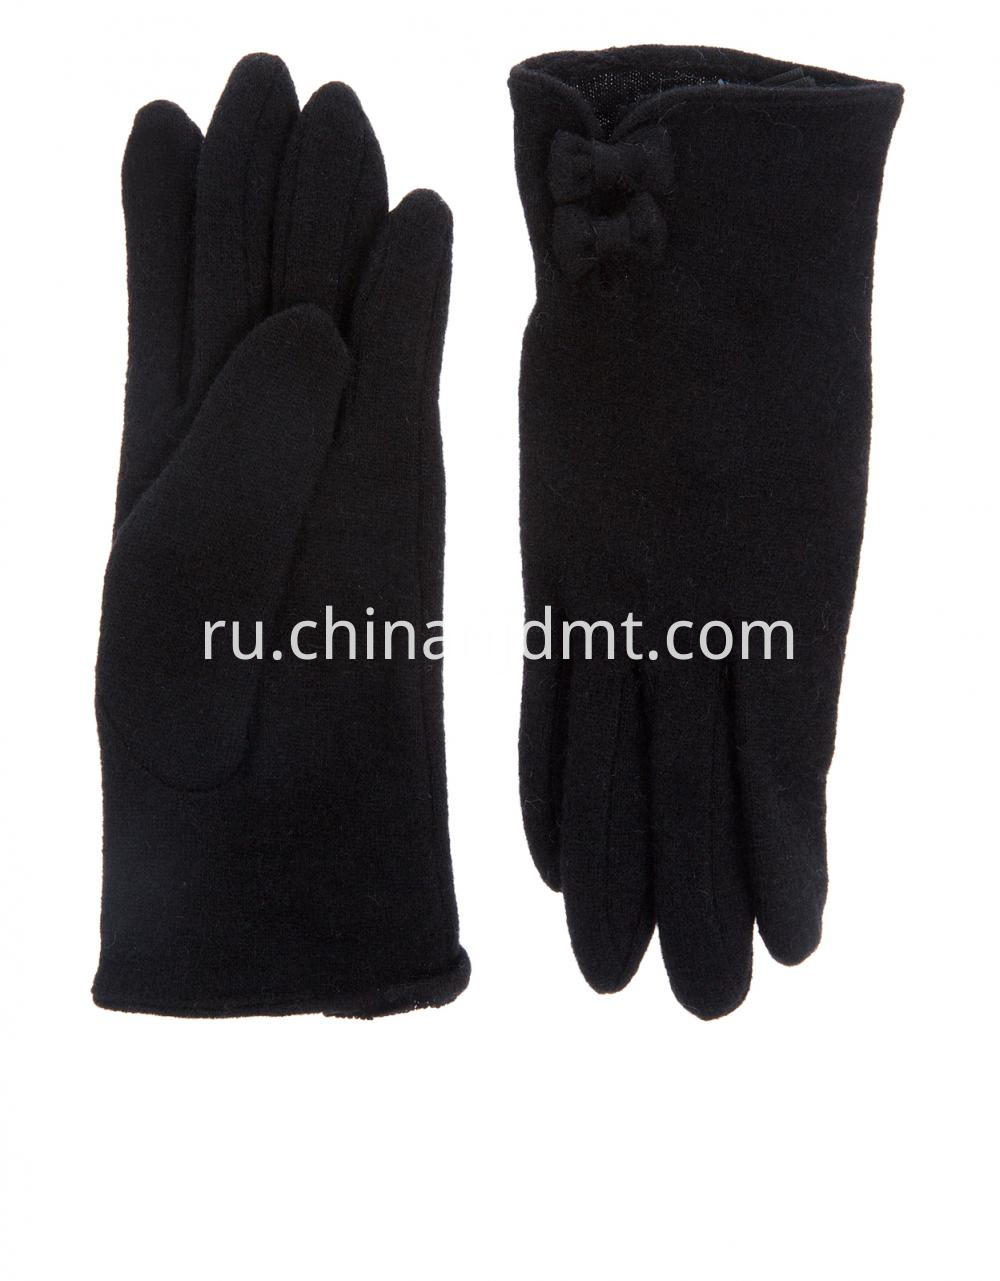 Wool Smart Glove With Bows Gloves Blk